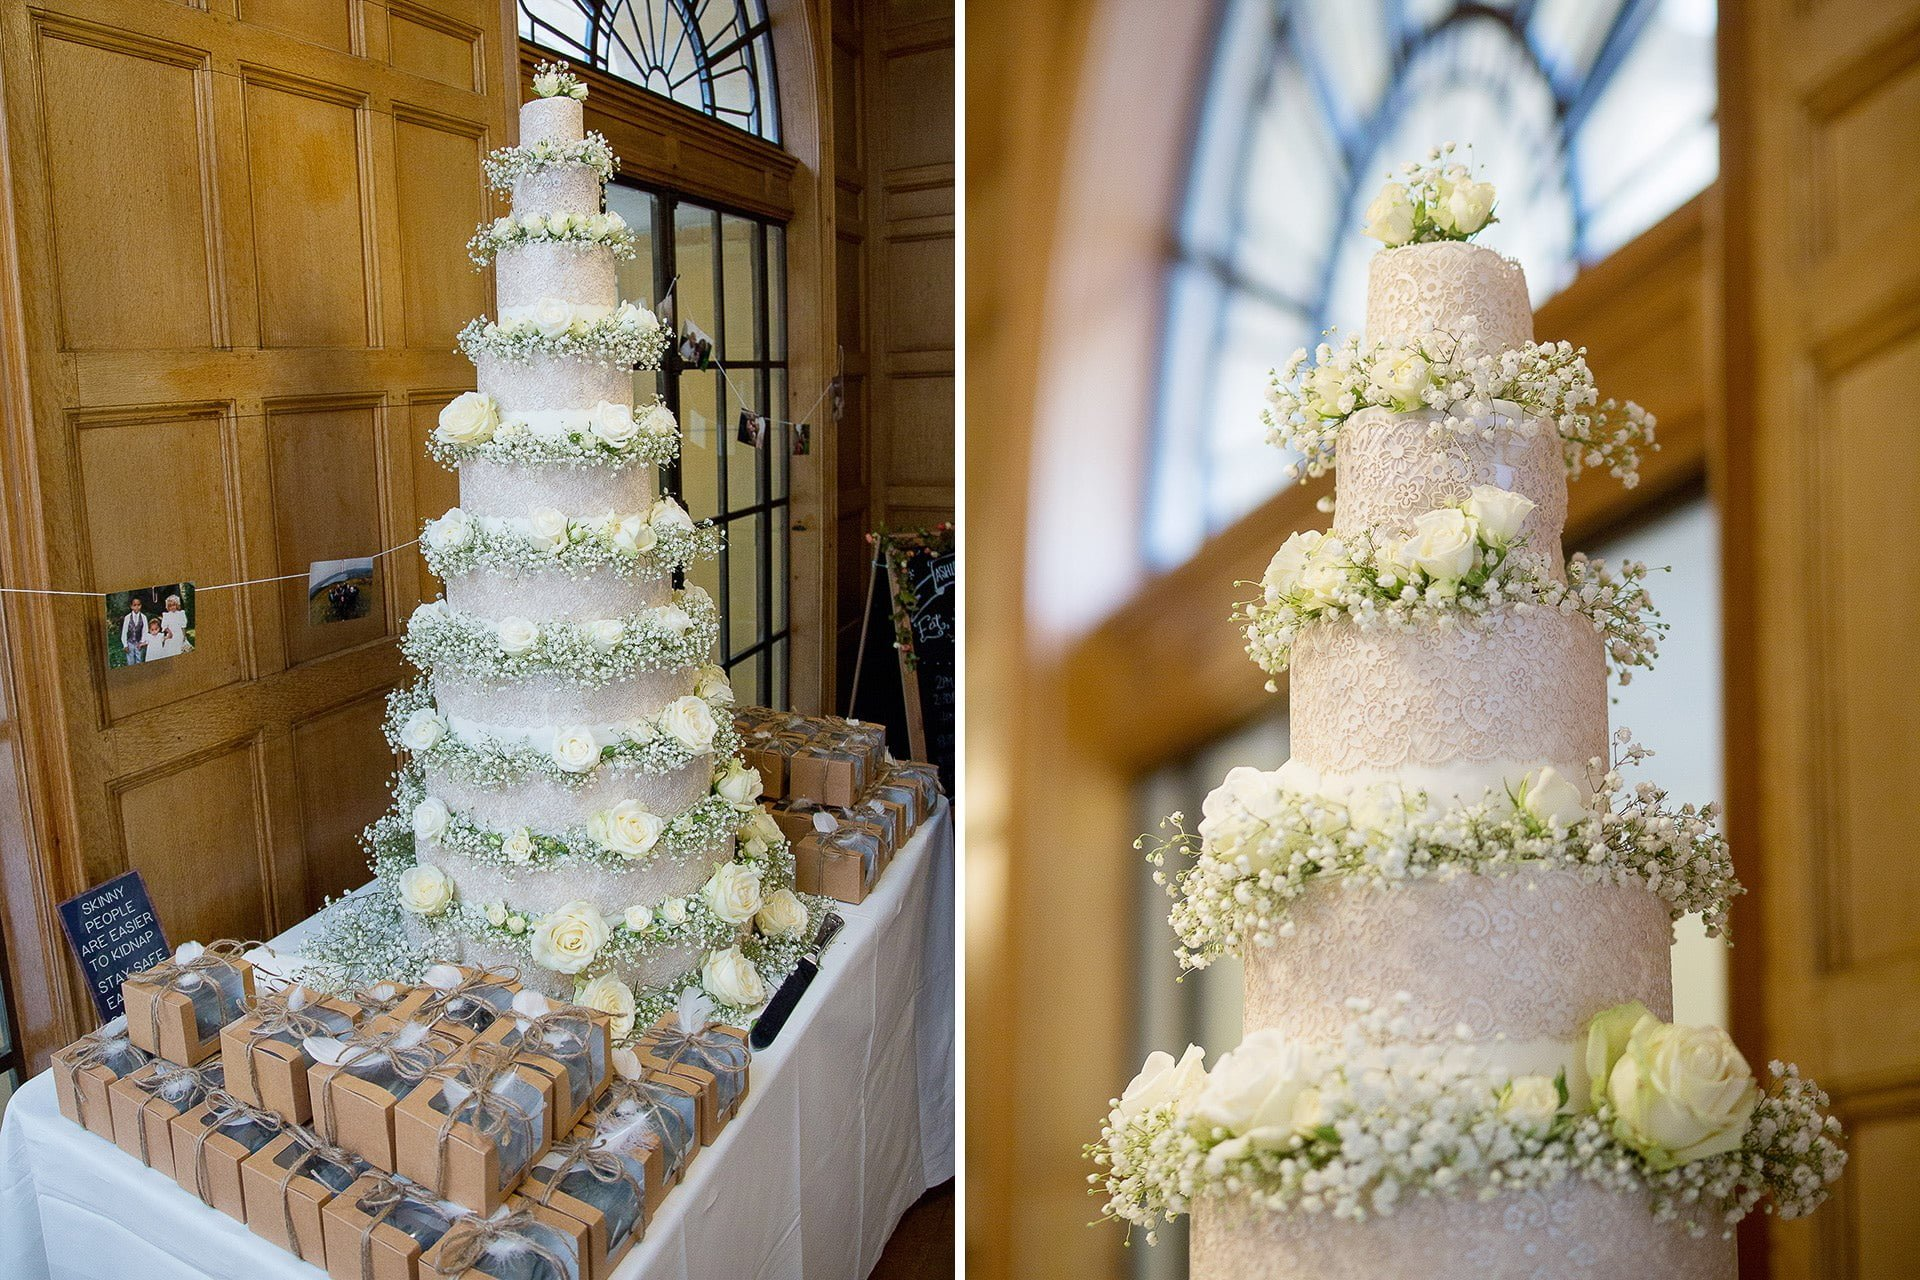 coombe lodge wedding cake